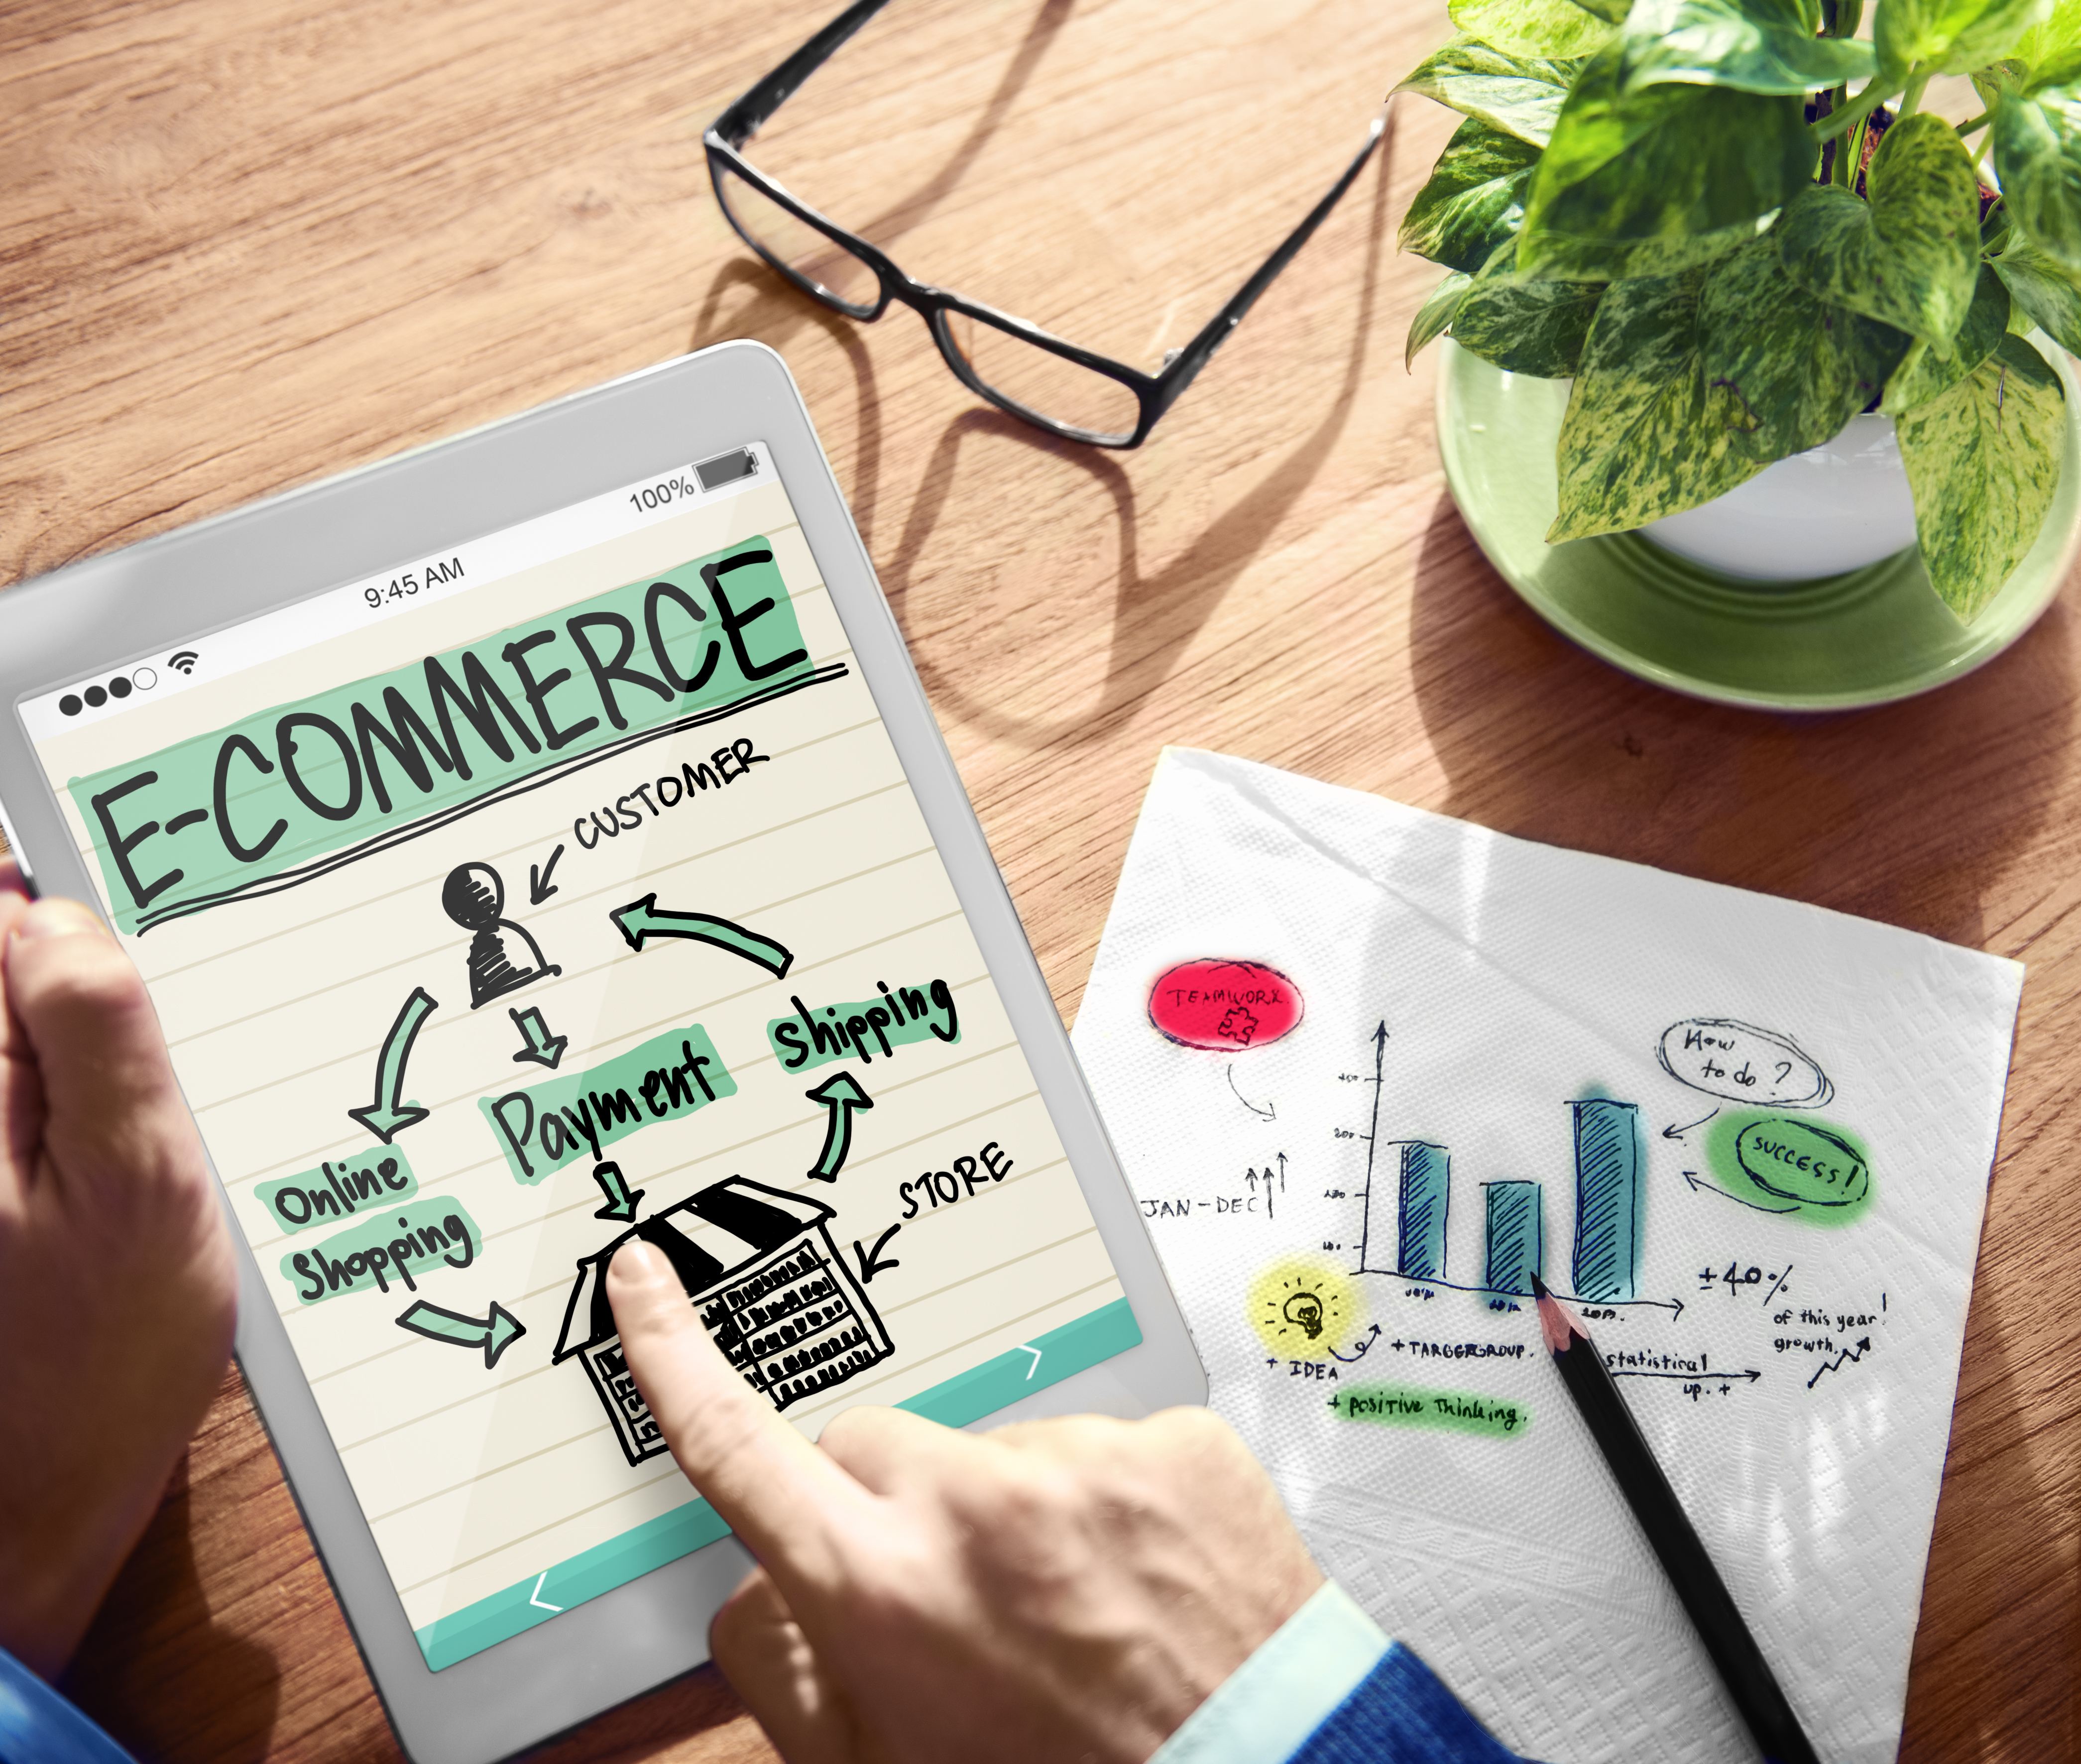 Why Should I Have eCommerce SEO Services?